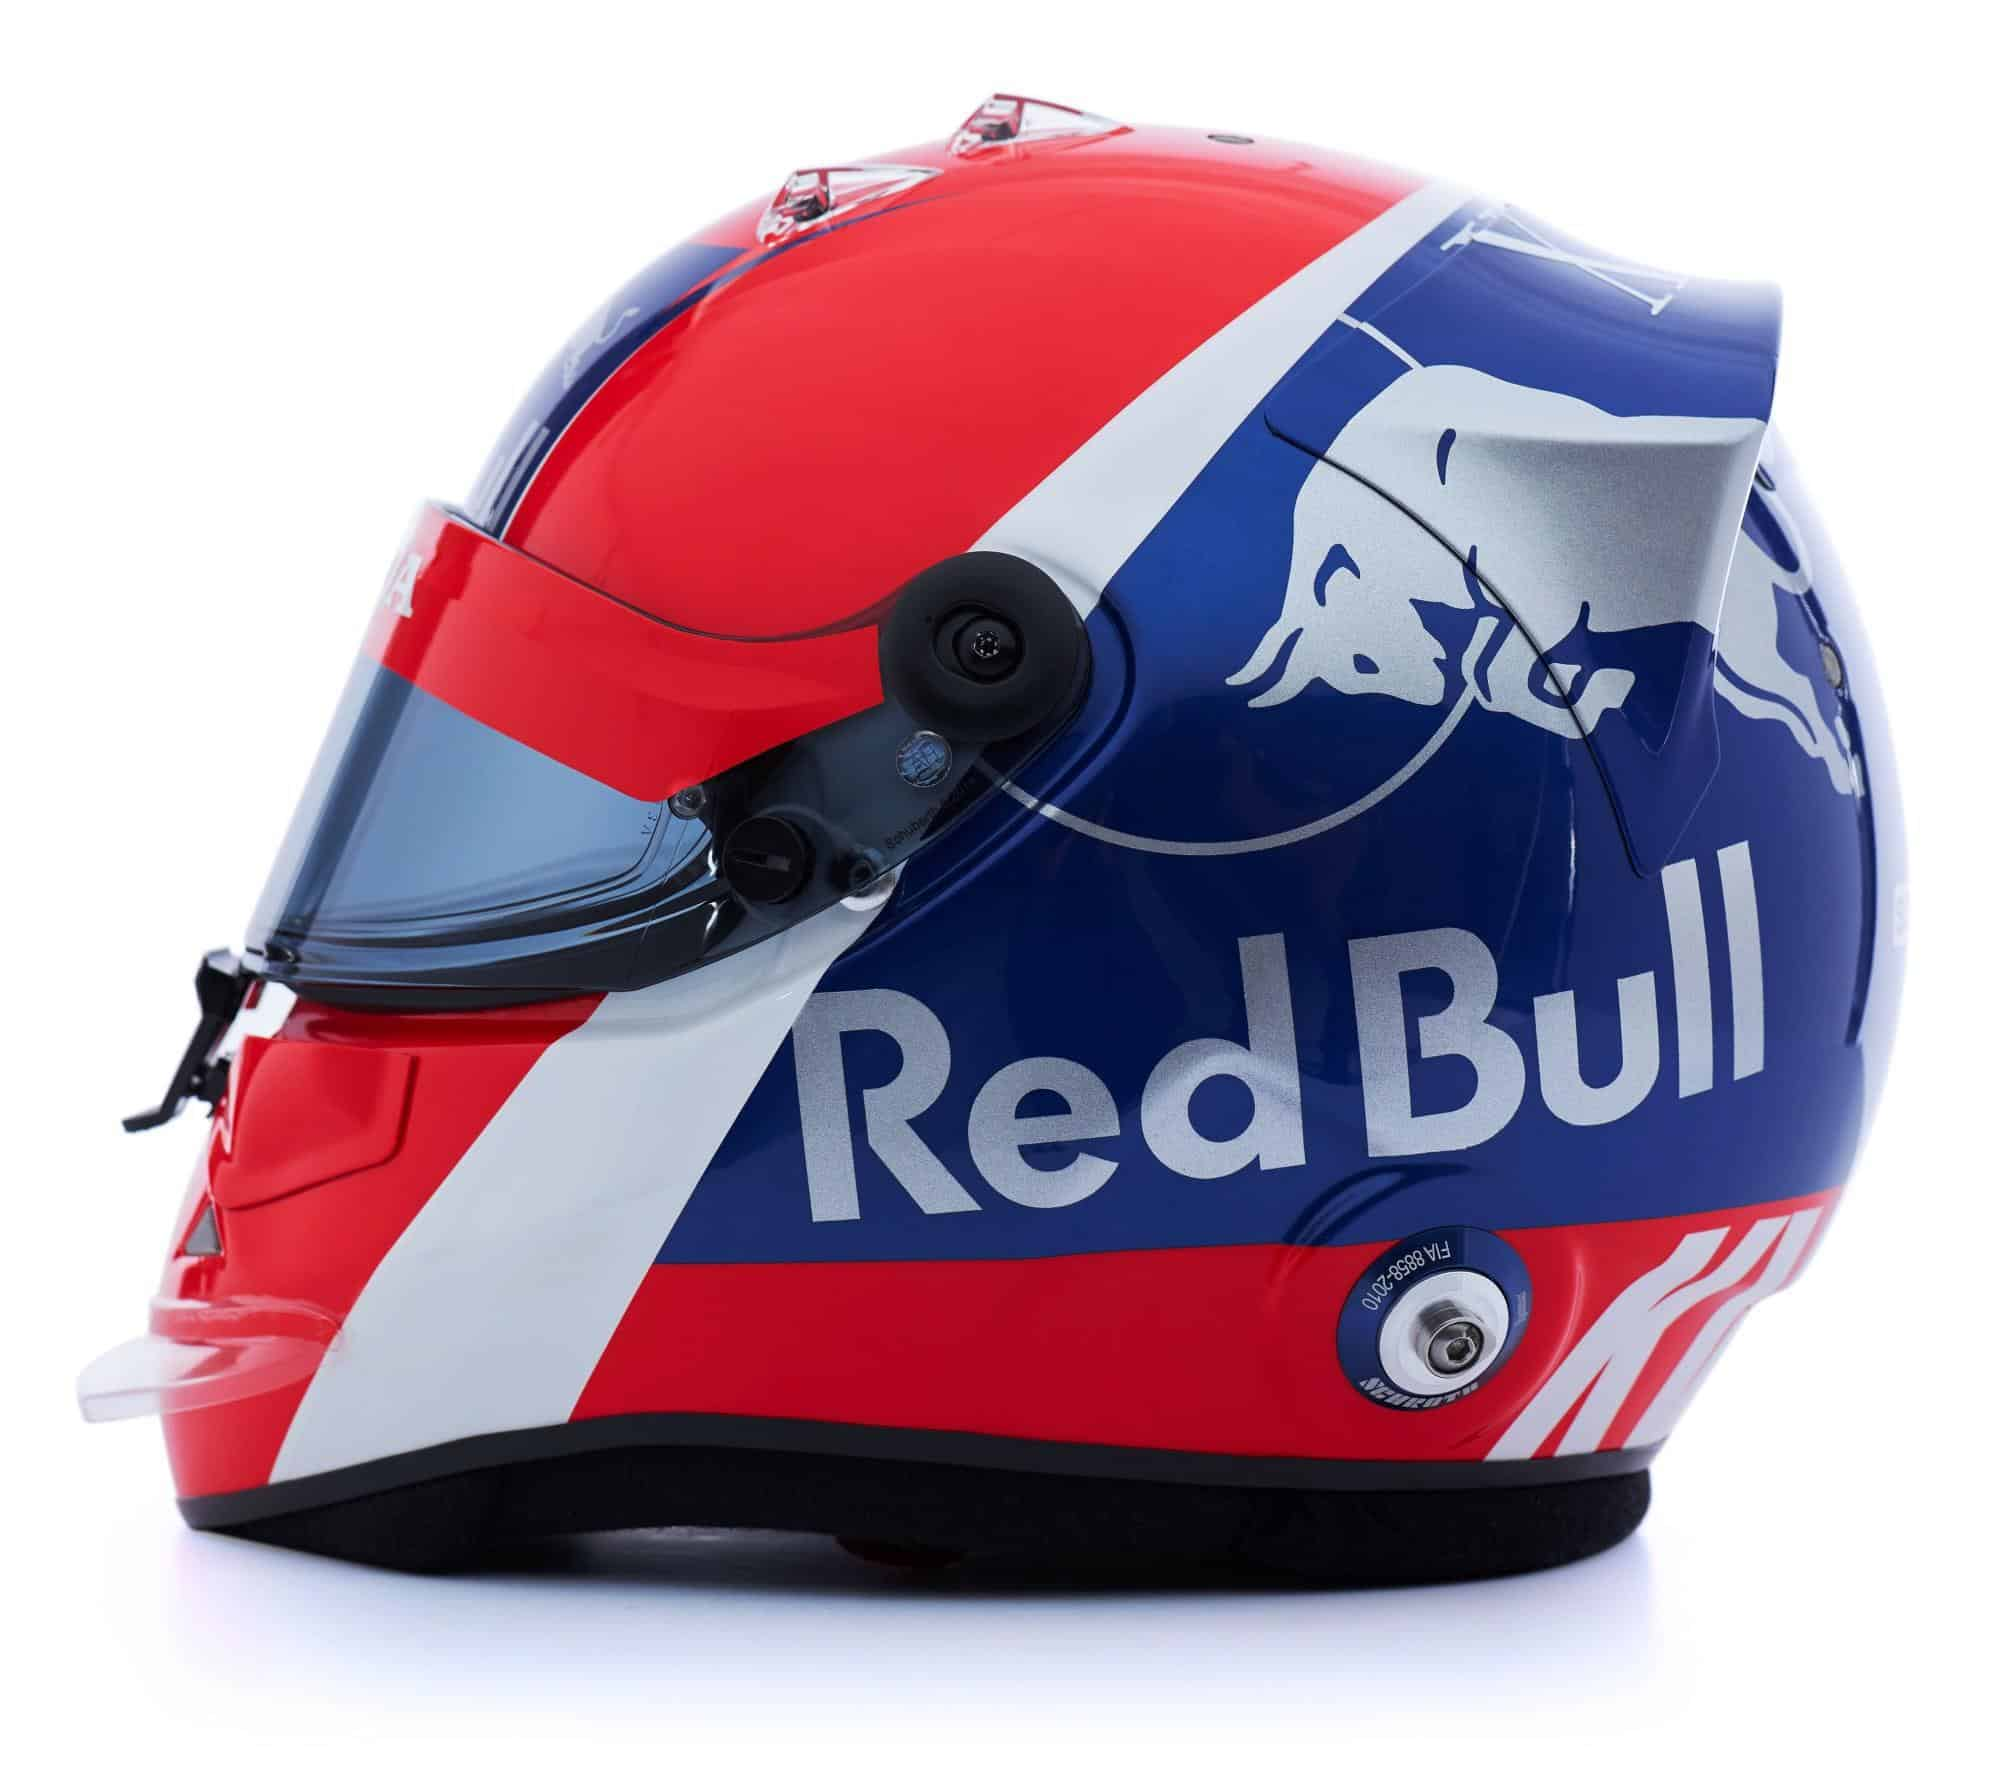 2019 F1 Daniil Kvyat helmet Toro Rosso Honda left side Photo Red Bull Edited by MAXF1net